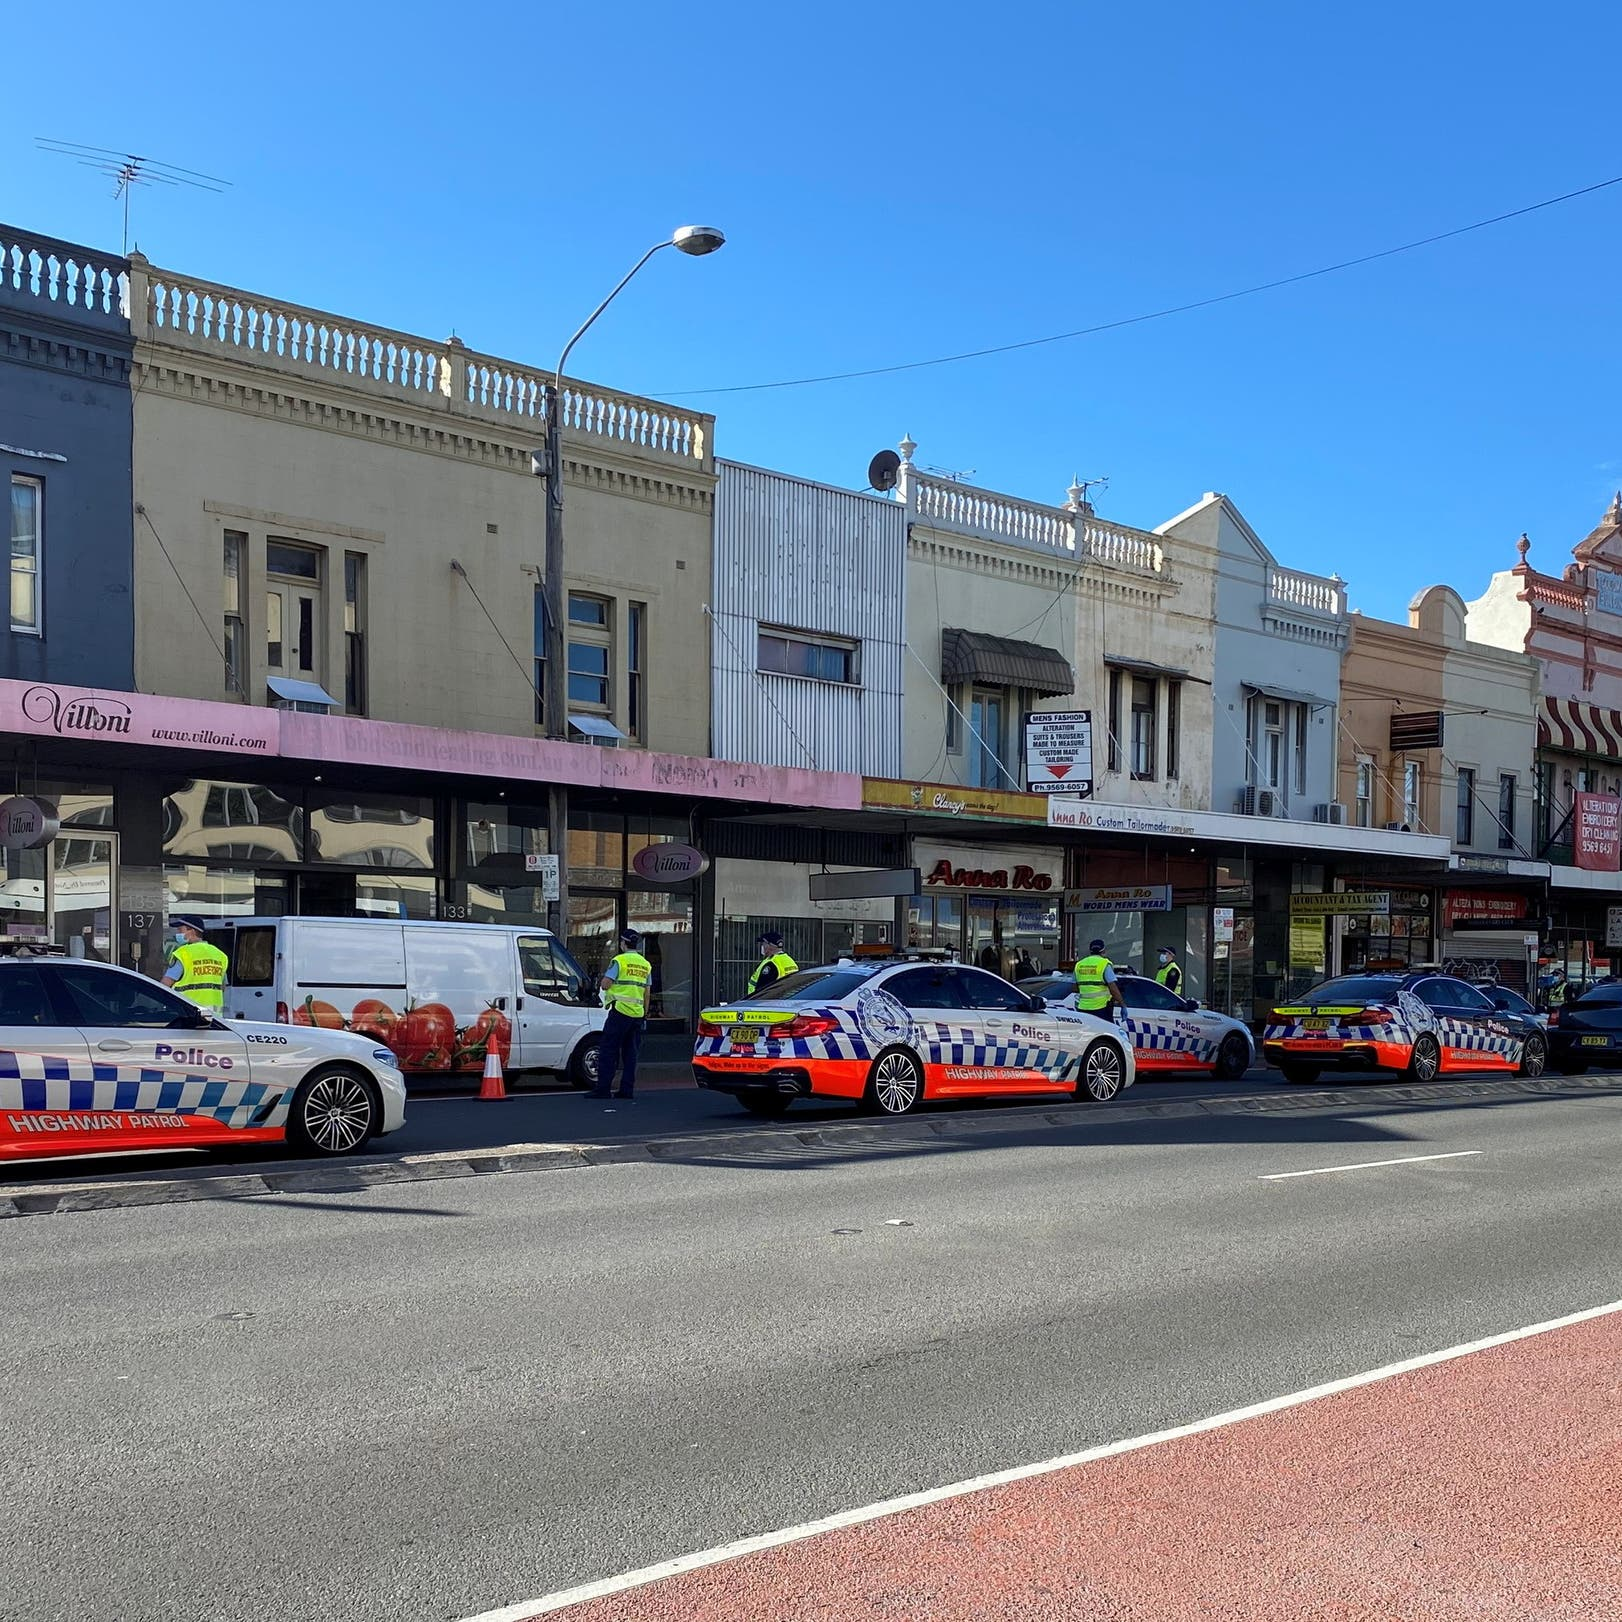 Sydney's COVID-19 infections continue to surge as police cordon deters protest